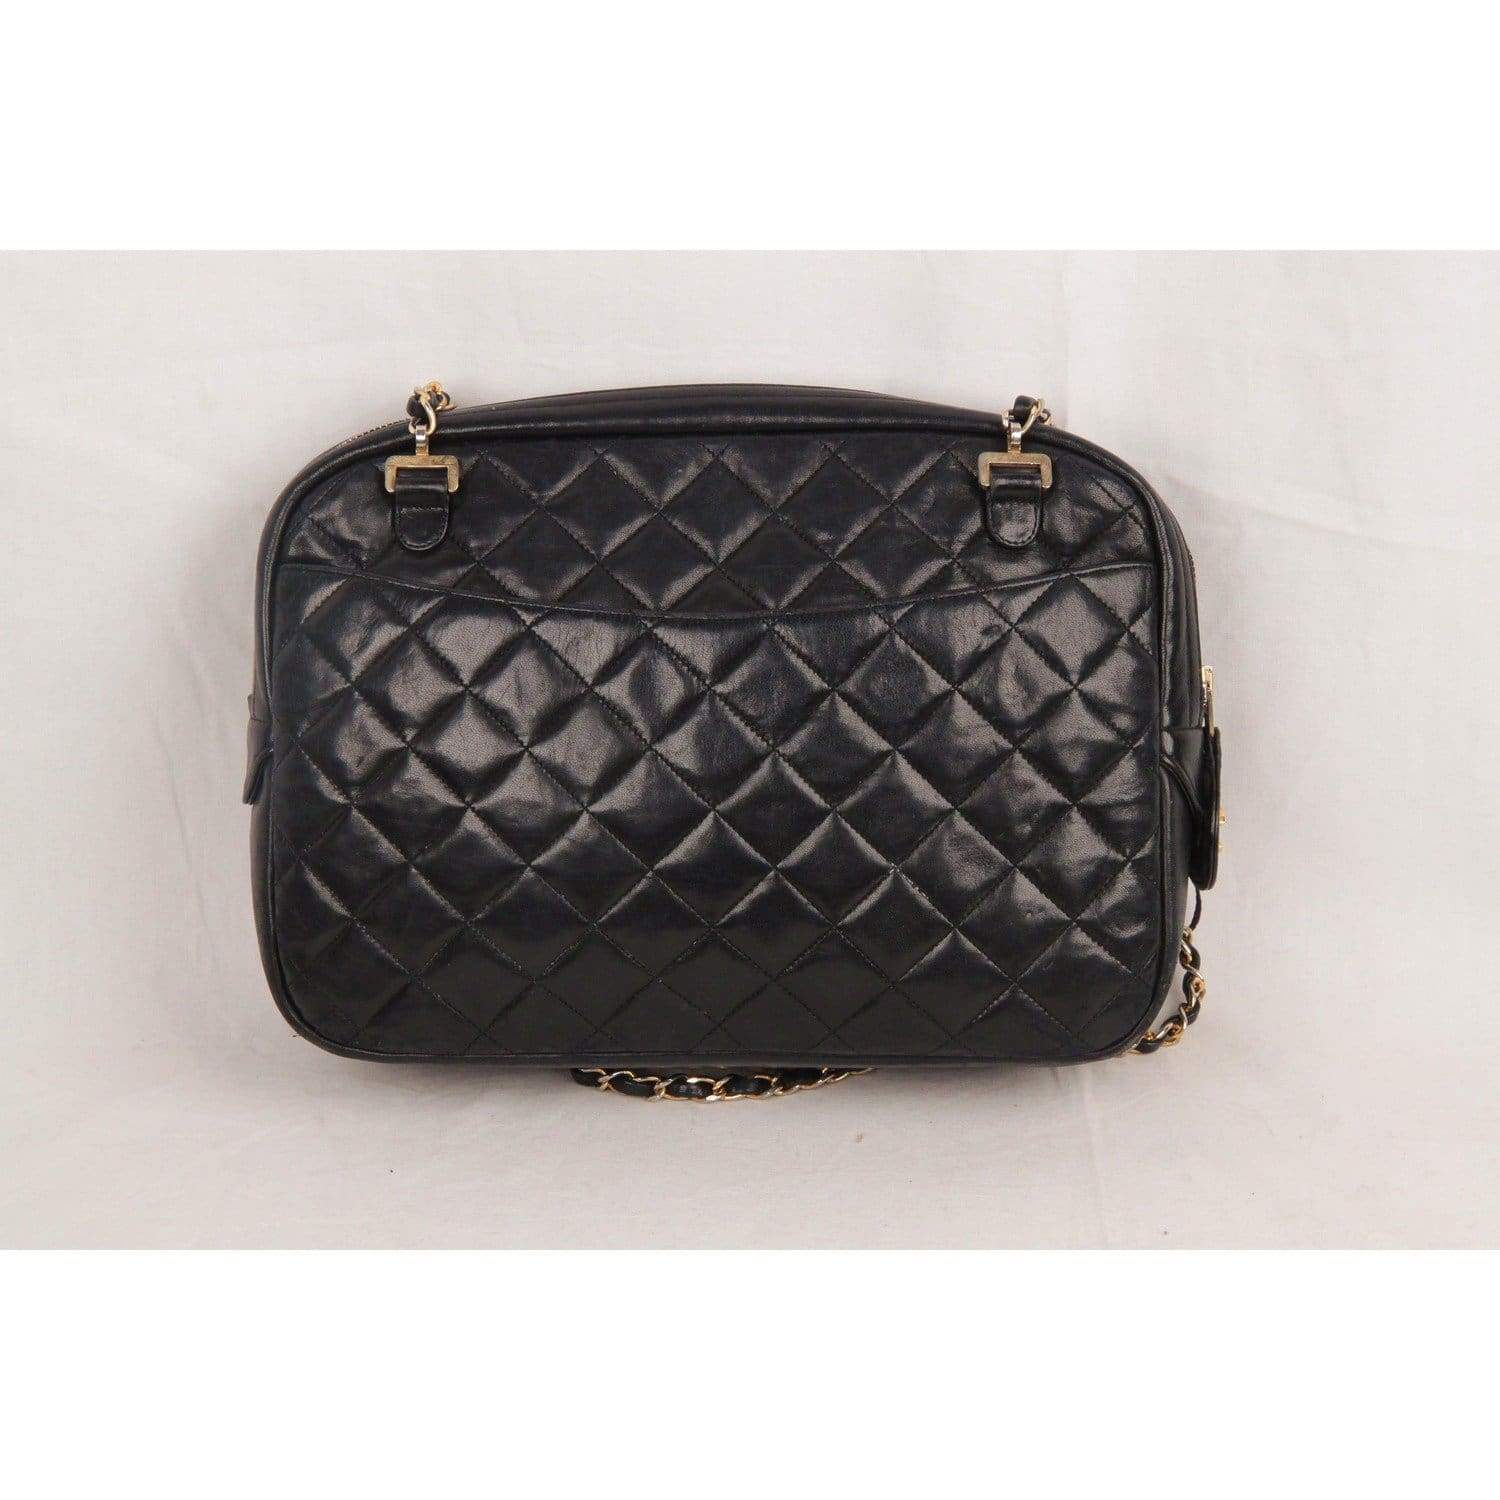 8131855886bf Opherty   Ciocci - Chanel Vintage Black Quilted Leather Large Camera ...